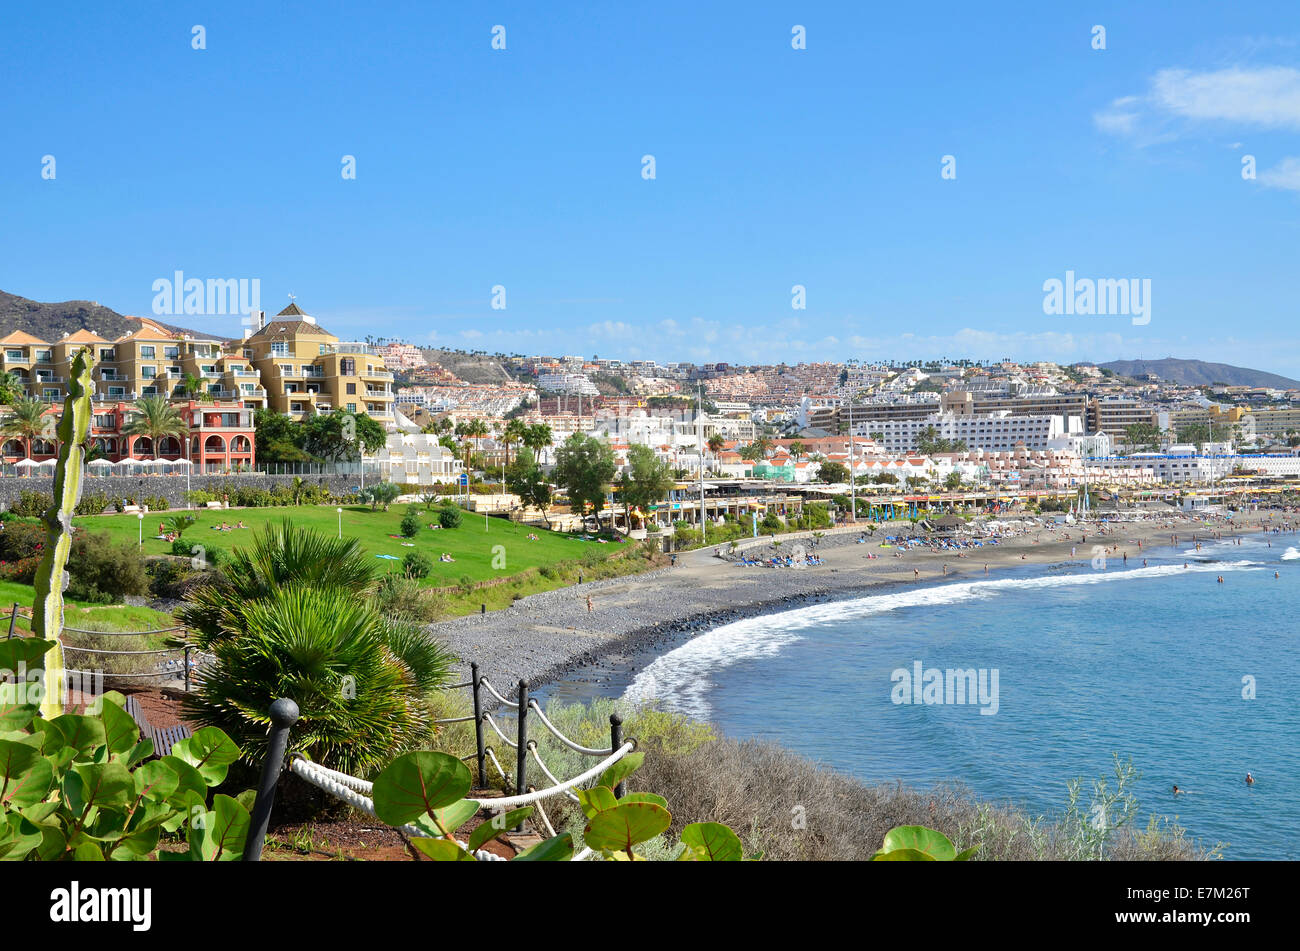 Looking towards Torviscas from Fanabe on the Costa Adeje in Tenerife, Canary Islands - Stock Image